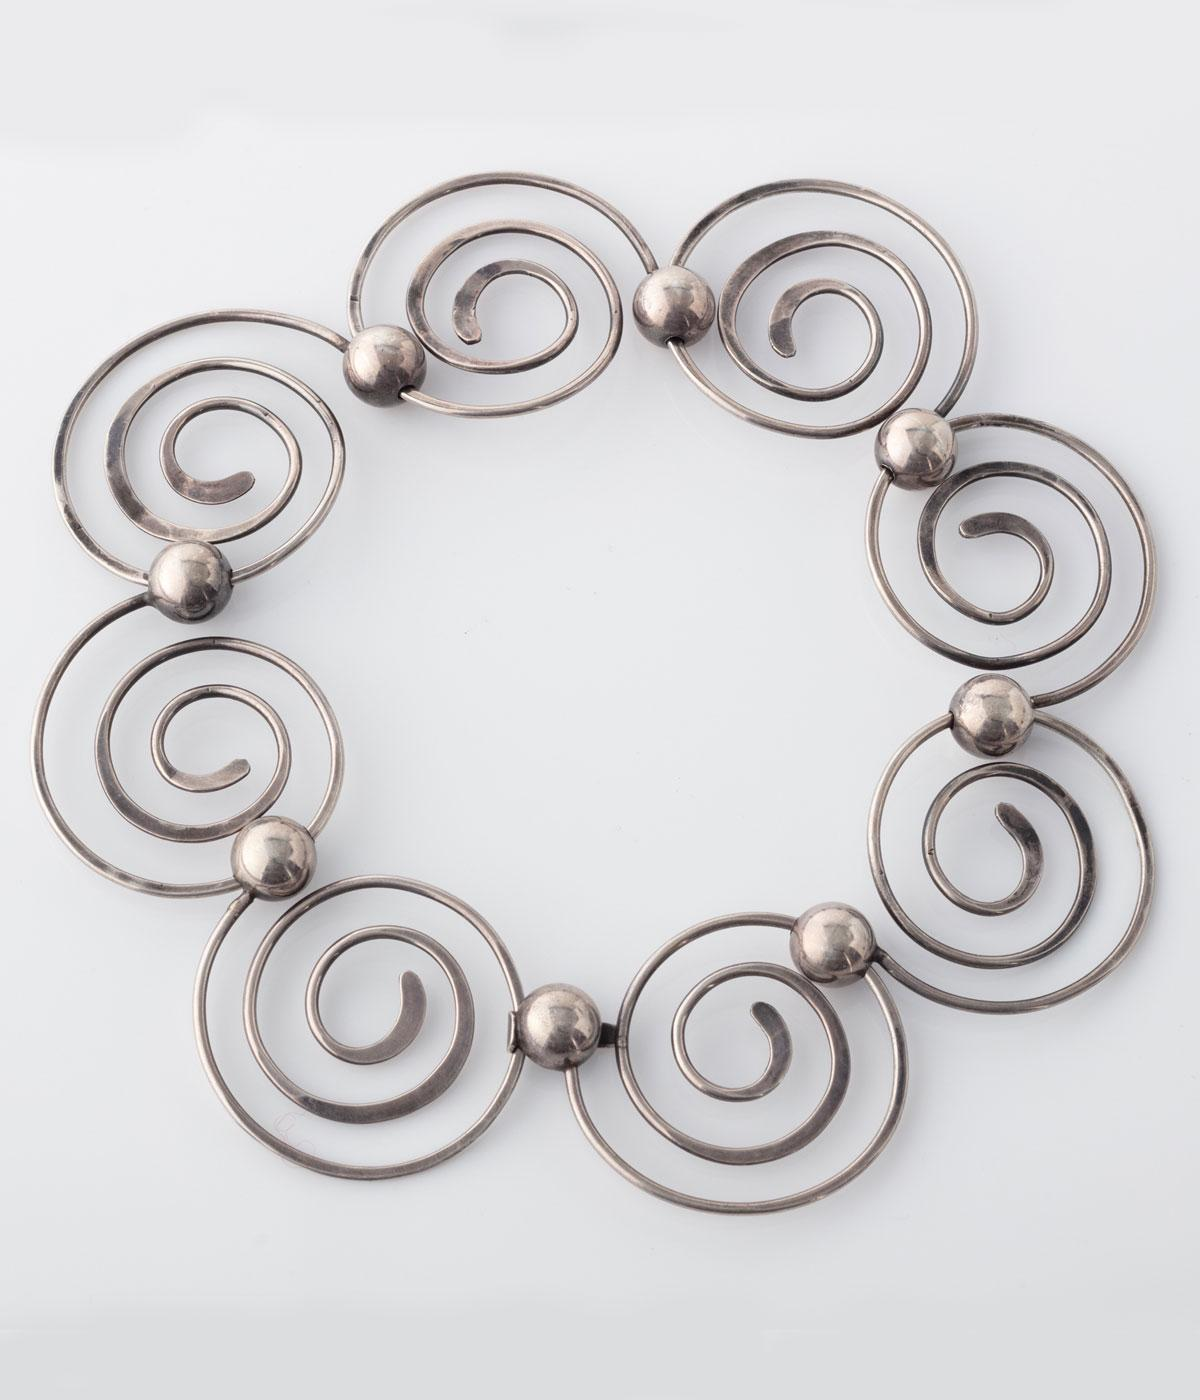 Silver spiral necklace against a grey backround